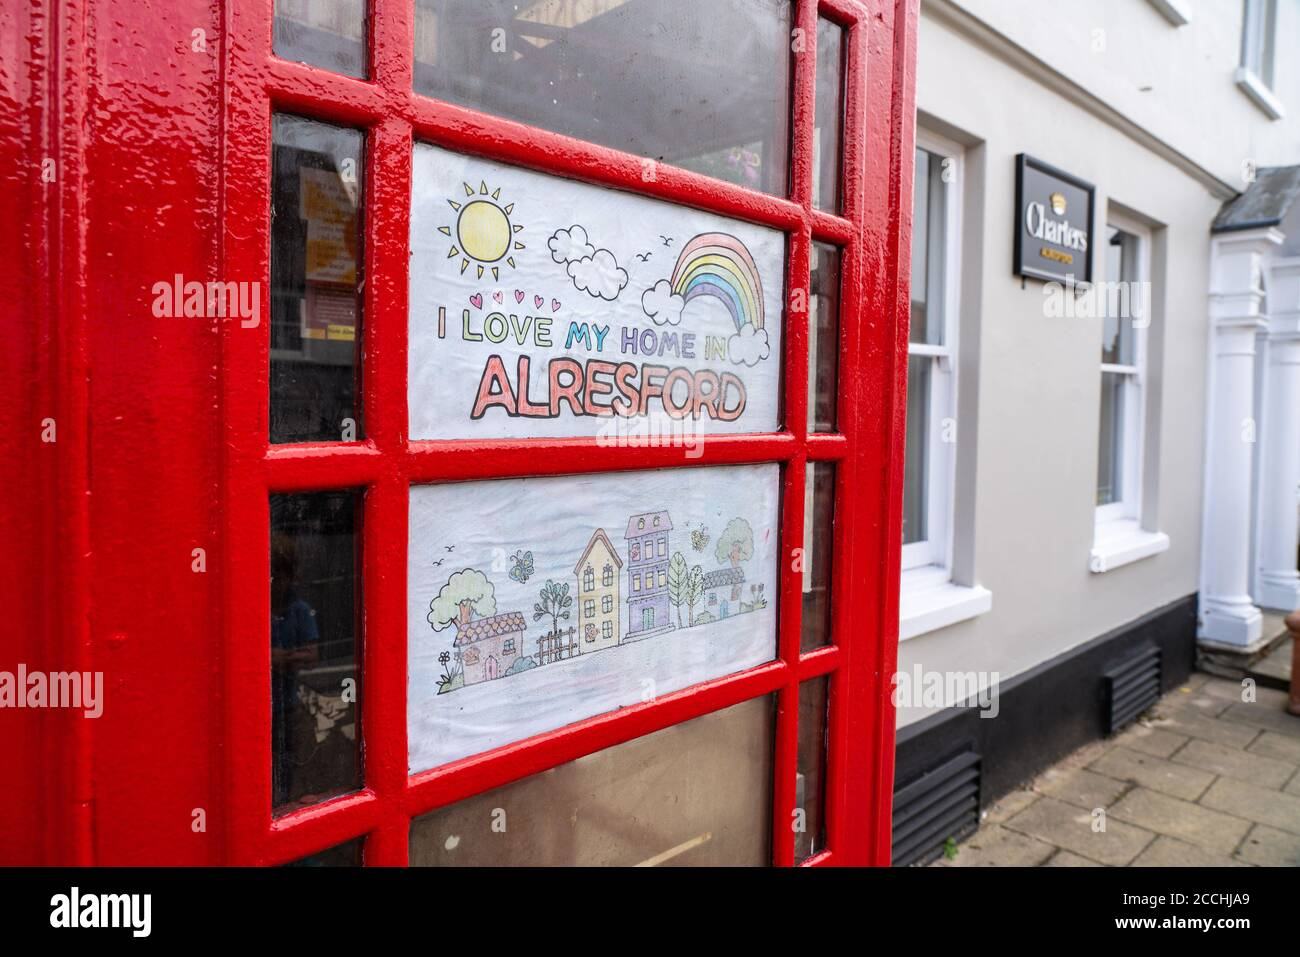 """""""I love my home in Alresford"""". Child's drawing in telephone box with rainbow. Spreading hope during Covid 19 crisis. Stock Photo"""